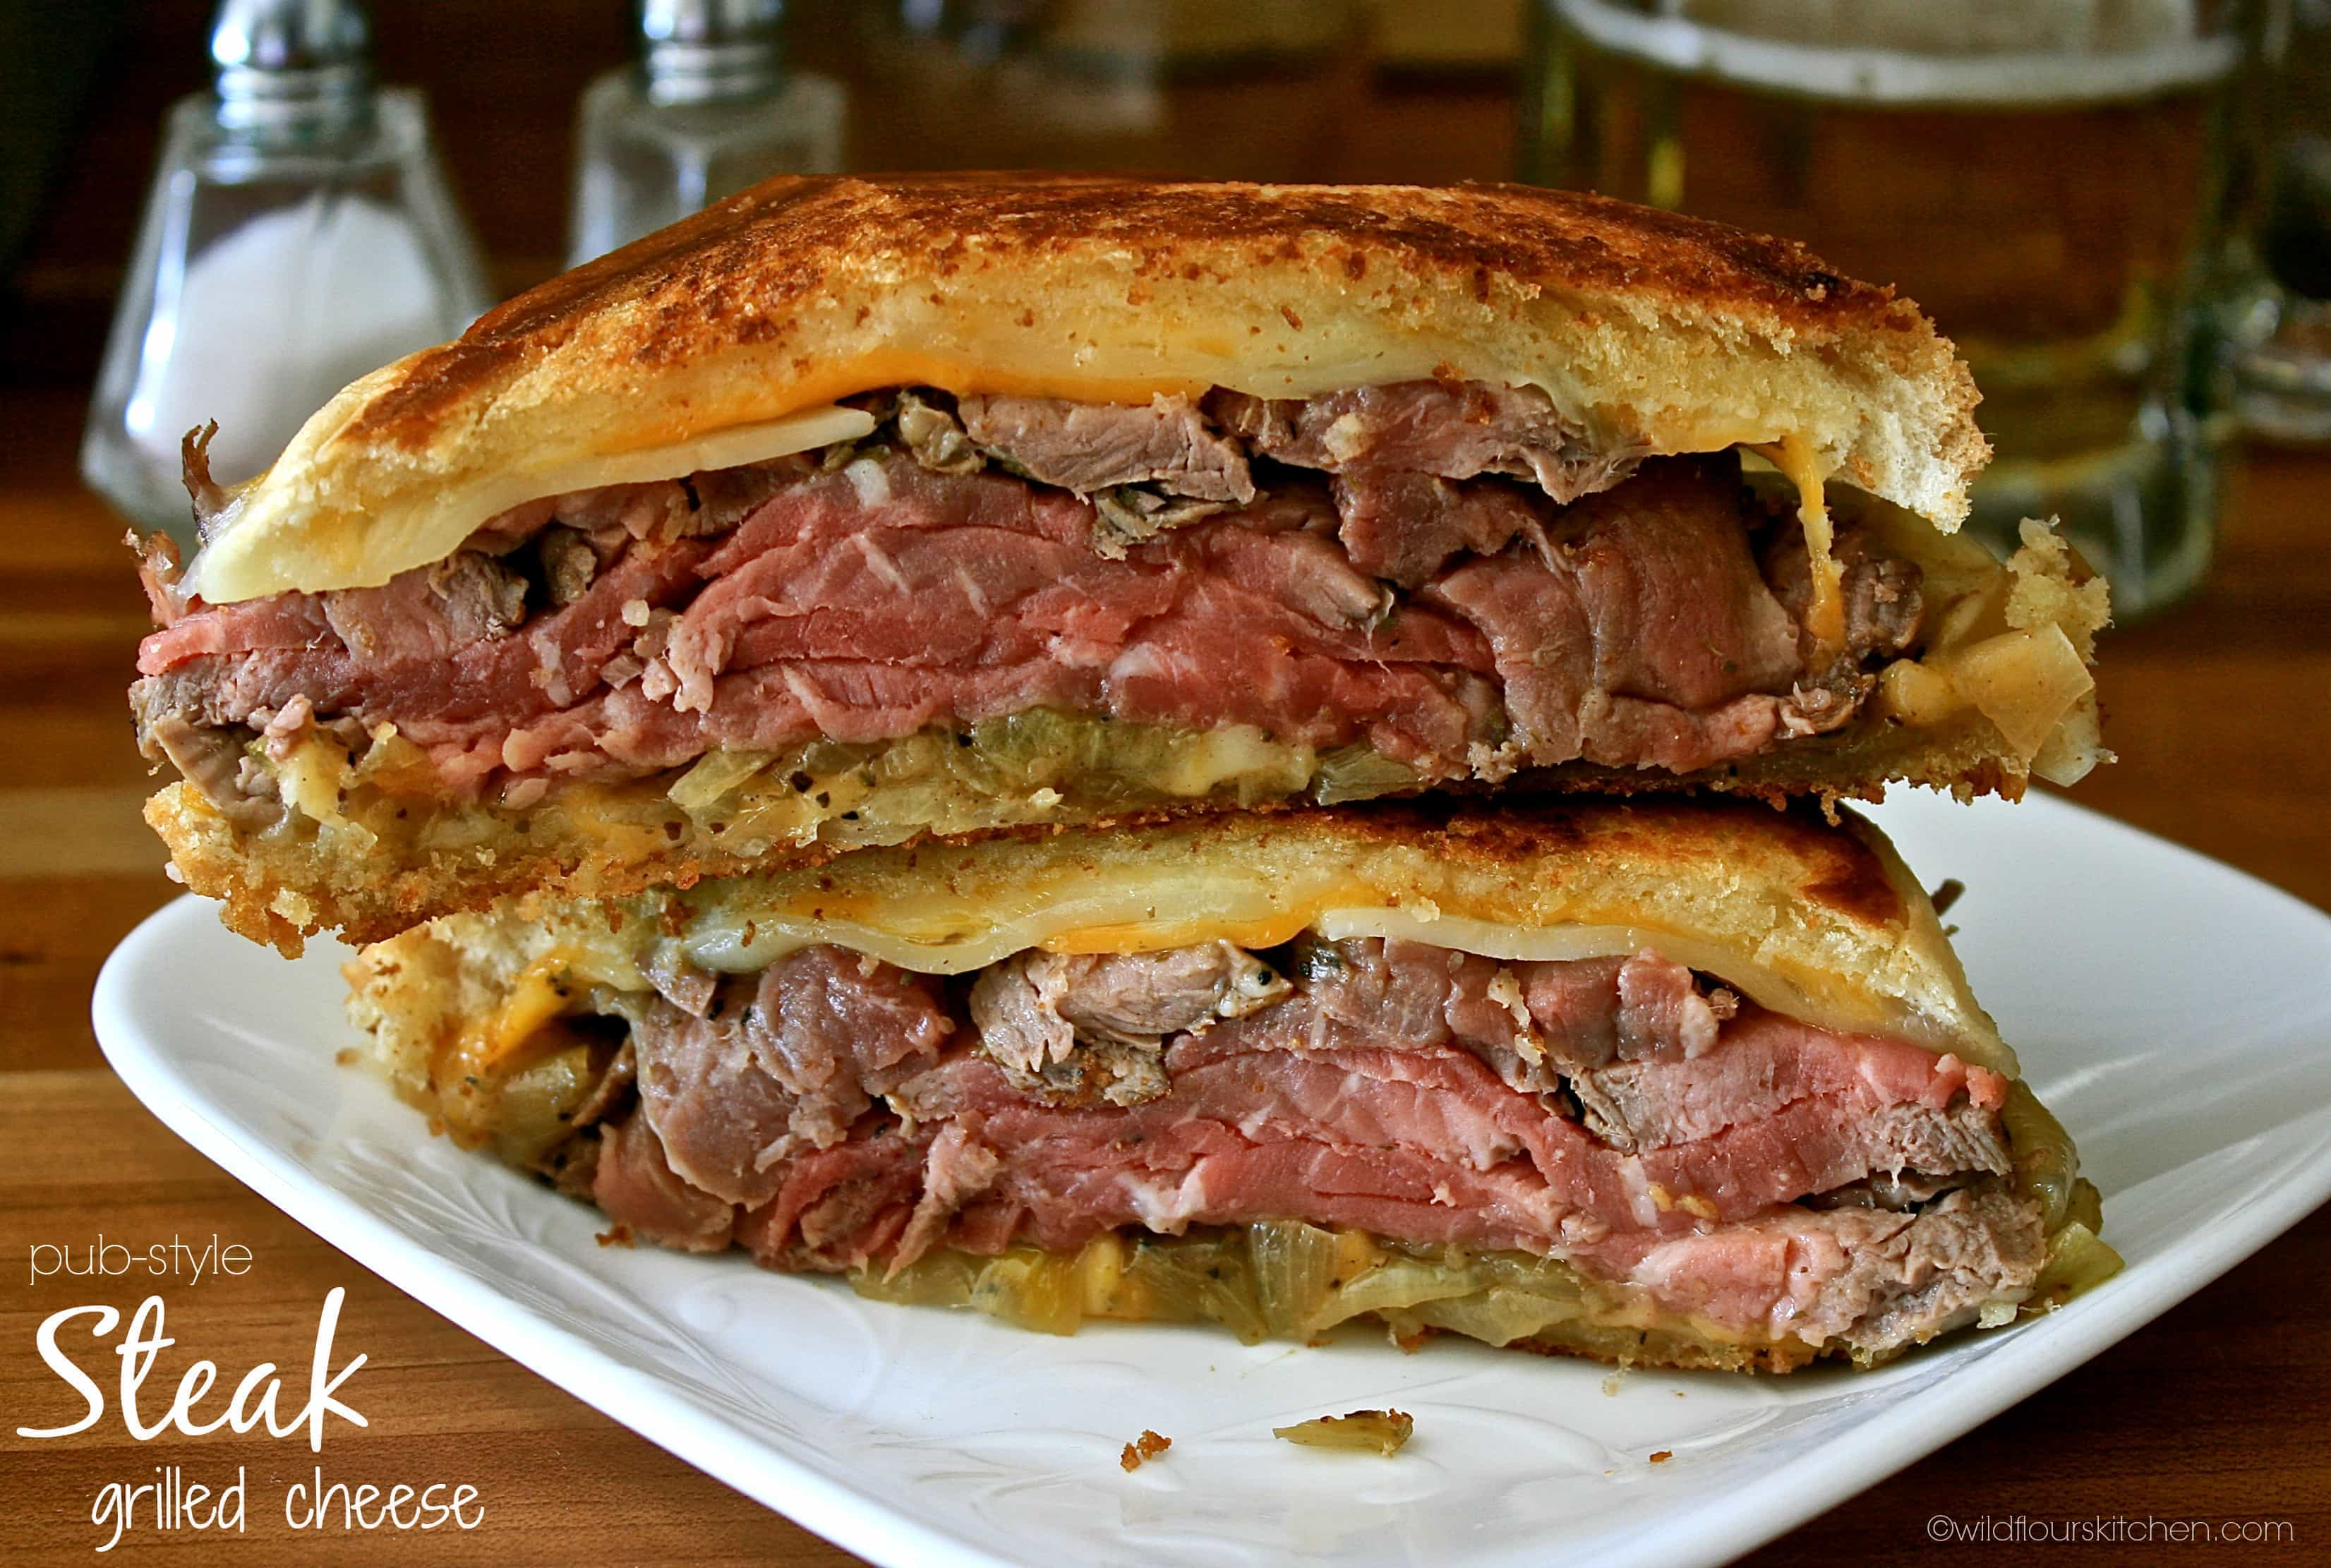 Pub-Style Steak Grilled Cheese with Beer-Braised Onions & Creamy ...